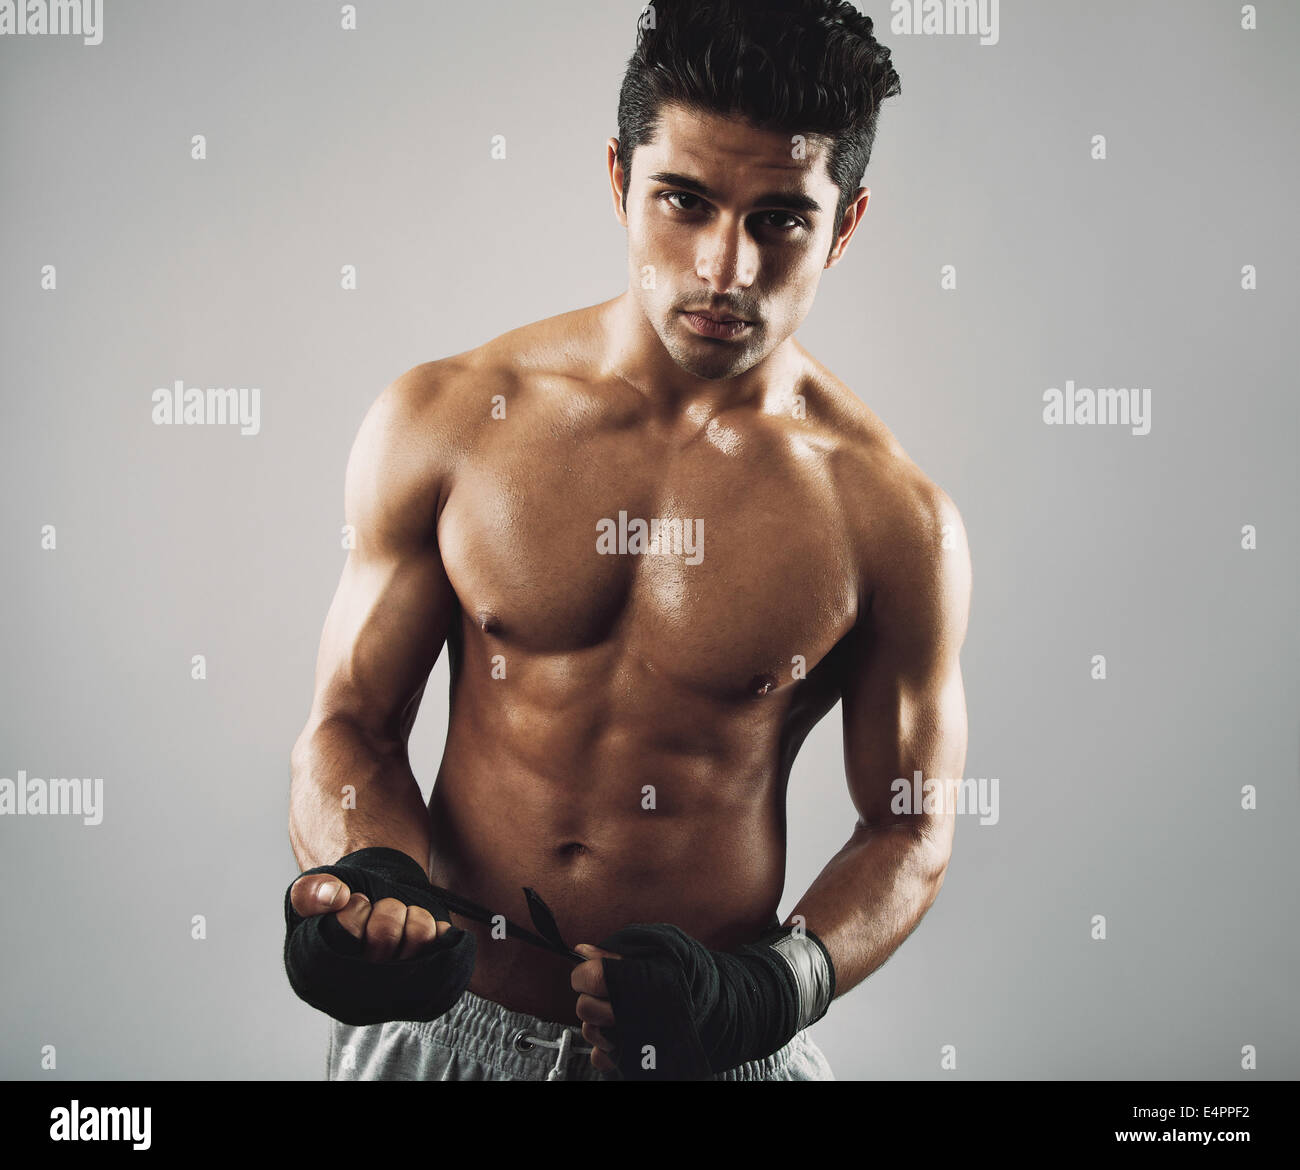 Portrait of tough young man wearing boxing gloves looking at camera. Hispanic male fitness model  shirtless on grey - Stock Image